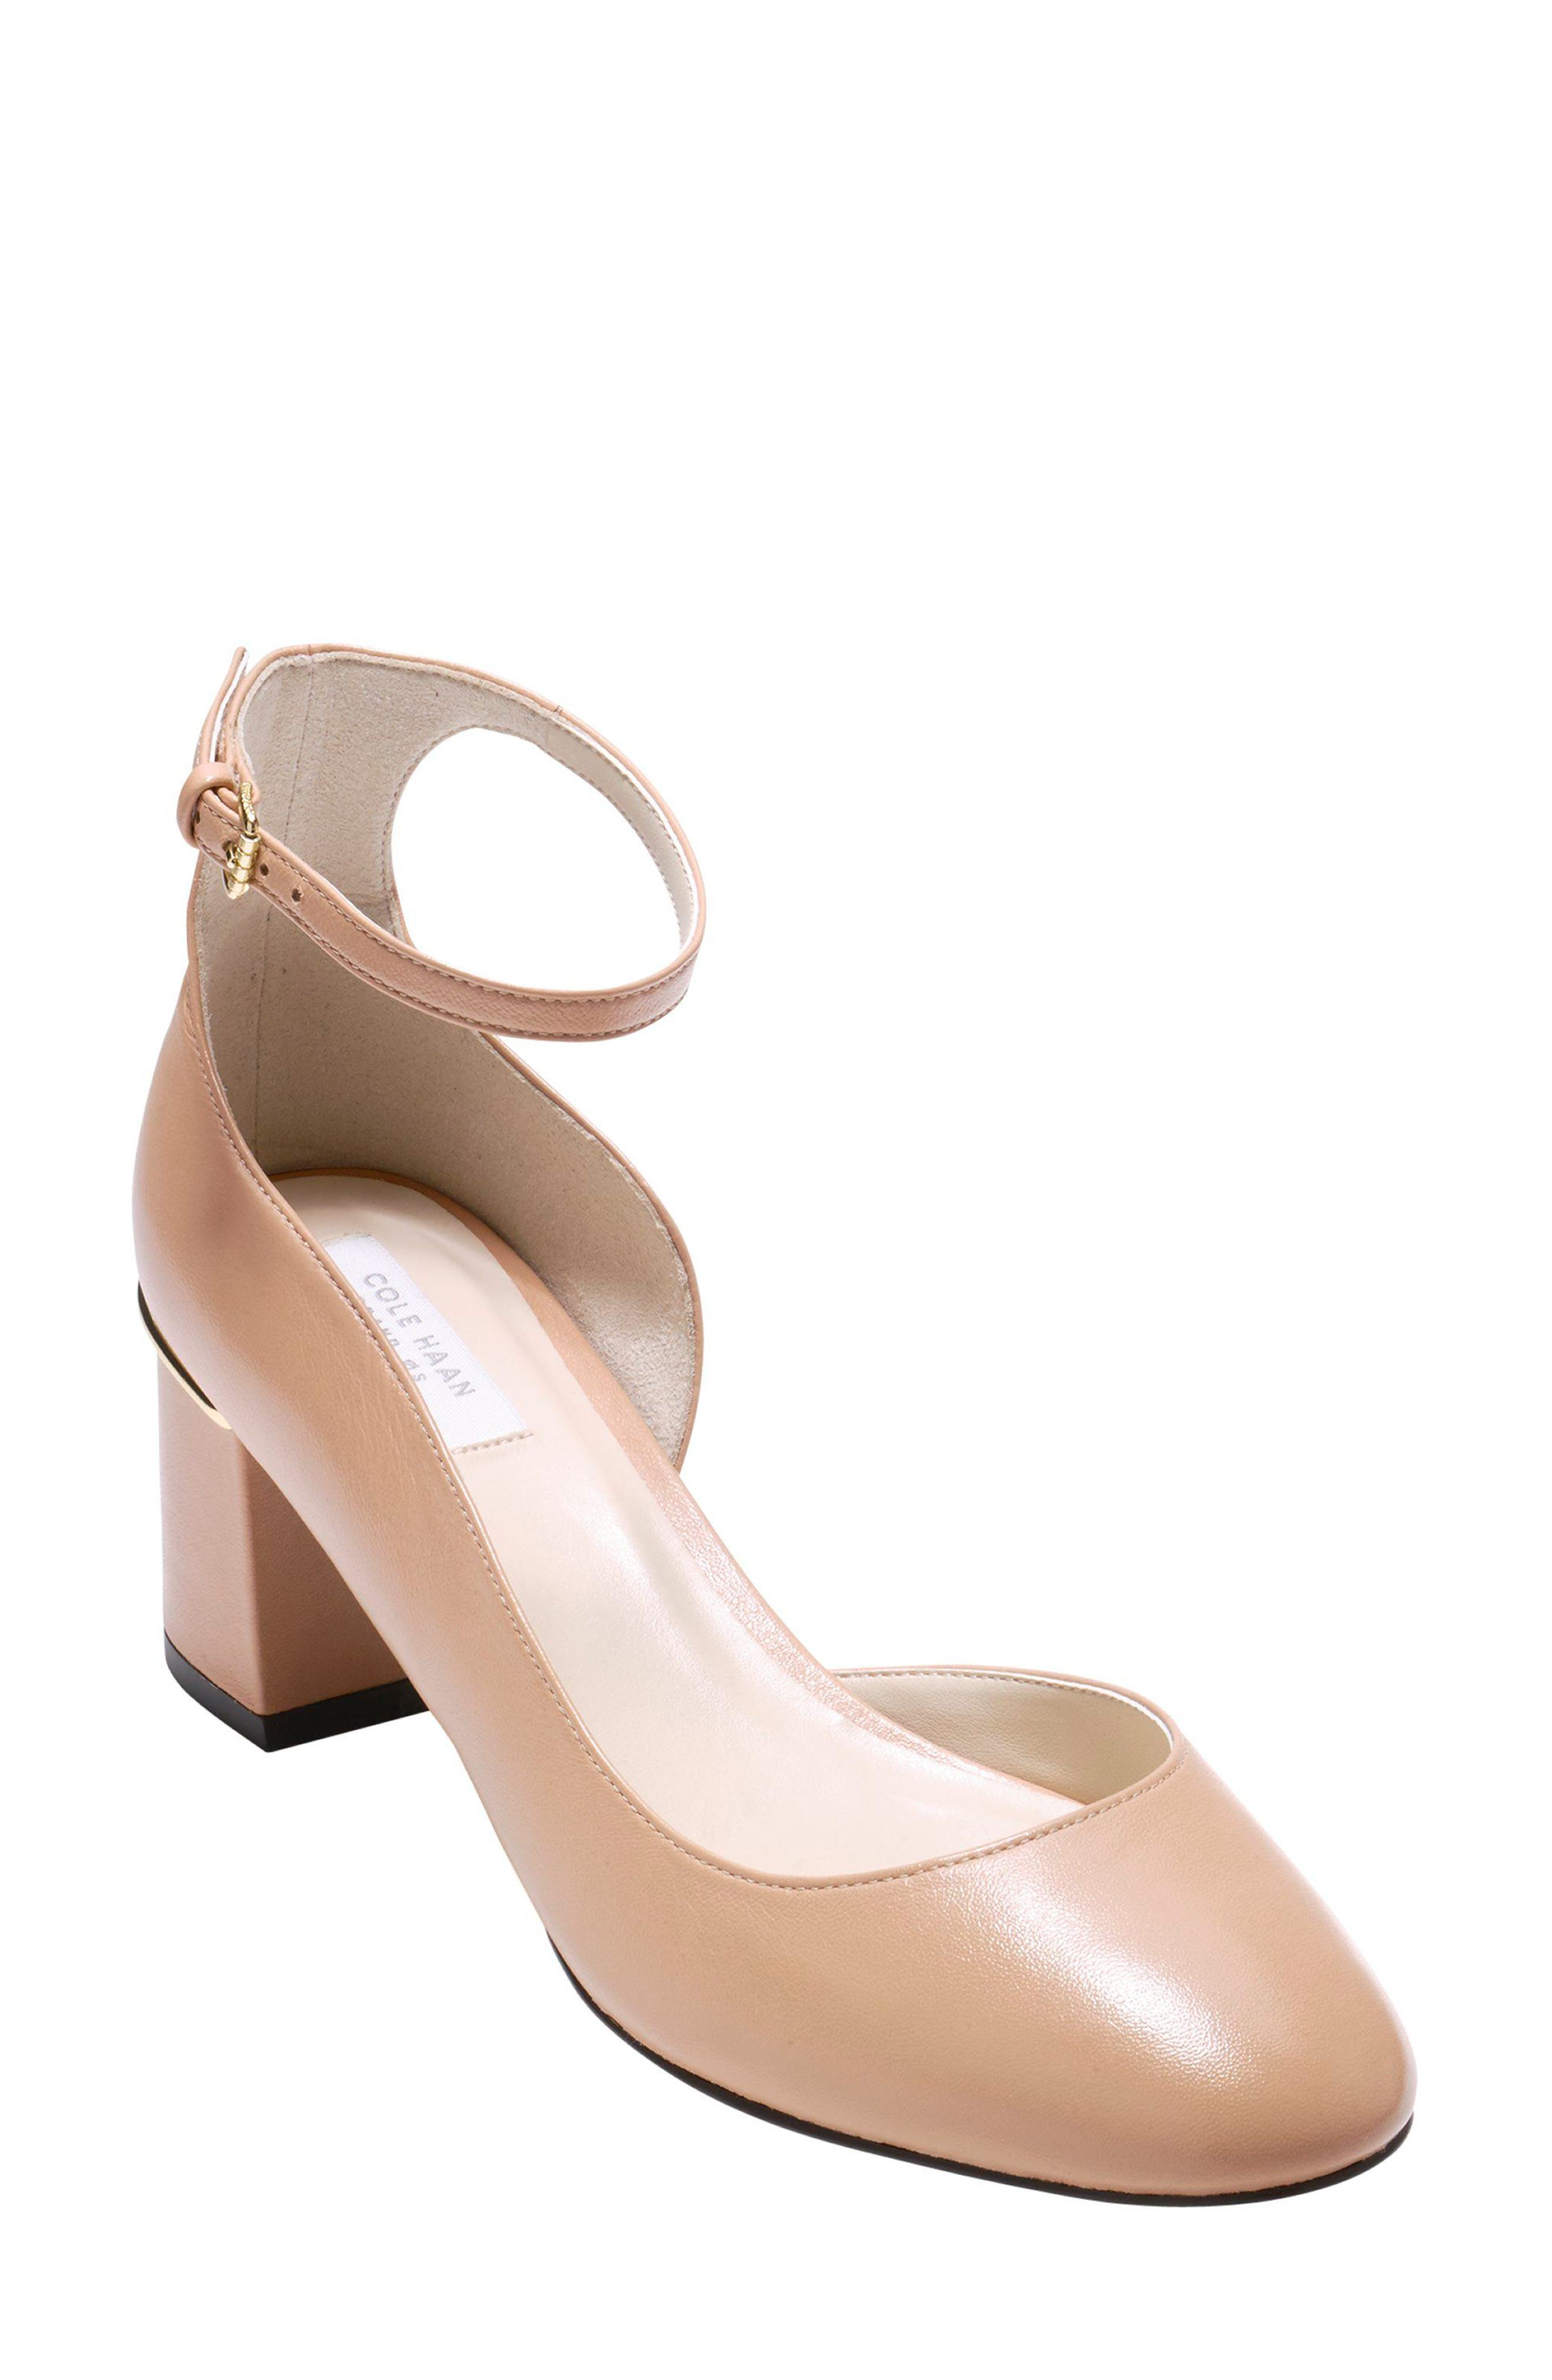 Warner Ankle Strap Pump,                         Main,                         color, NUDE LEATHER